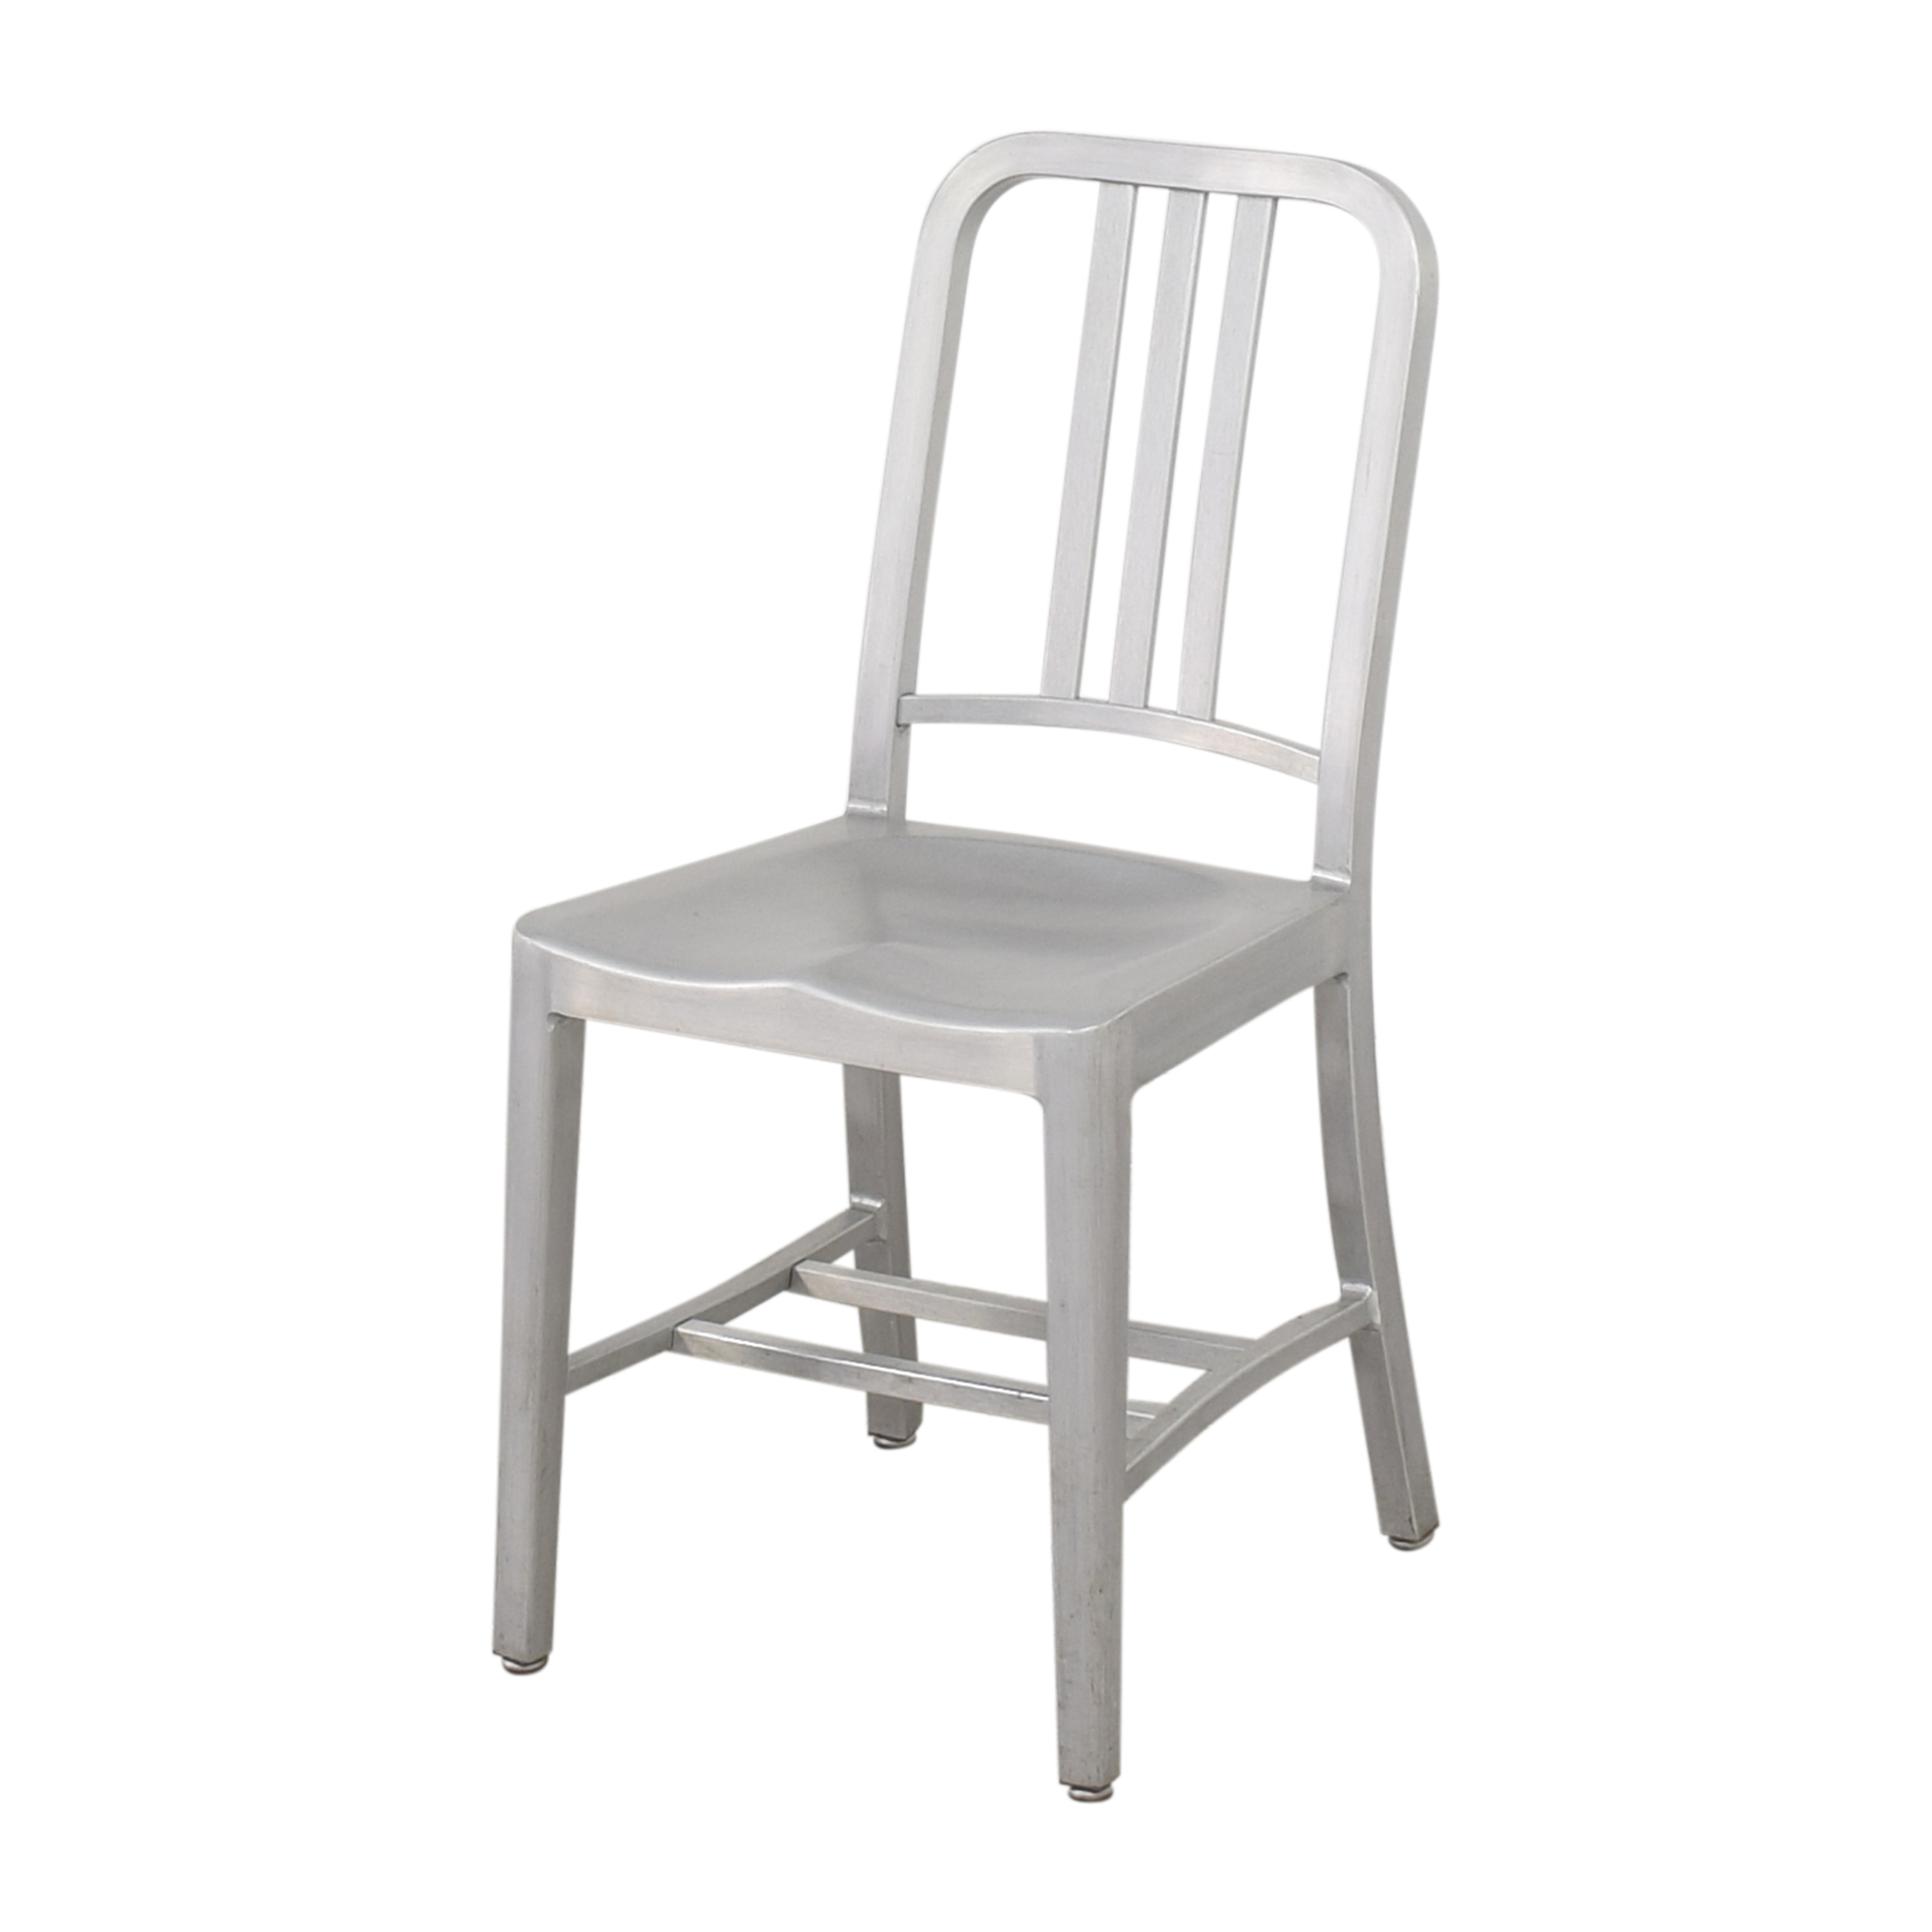 Emeco Navy Chairs / Chairs